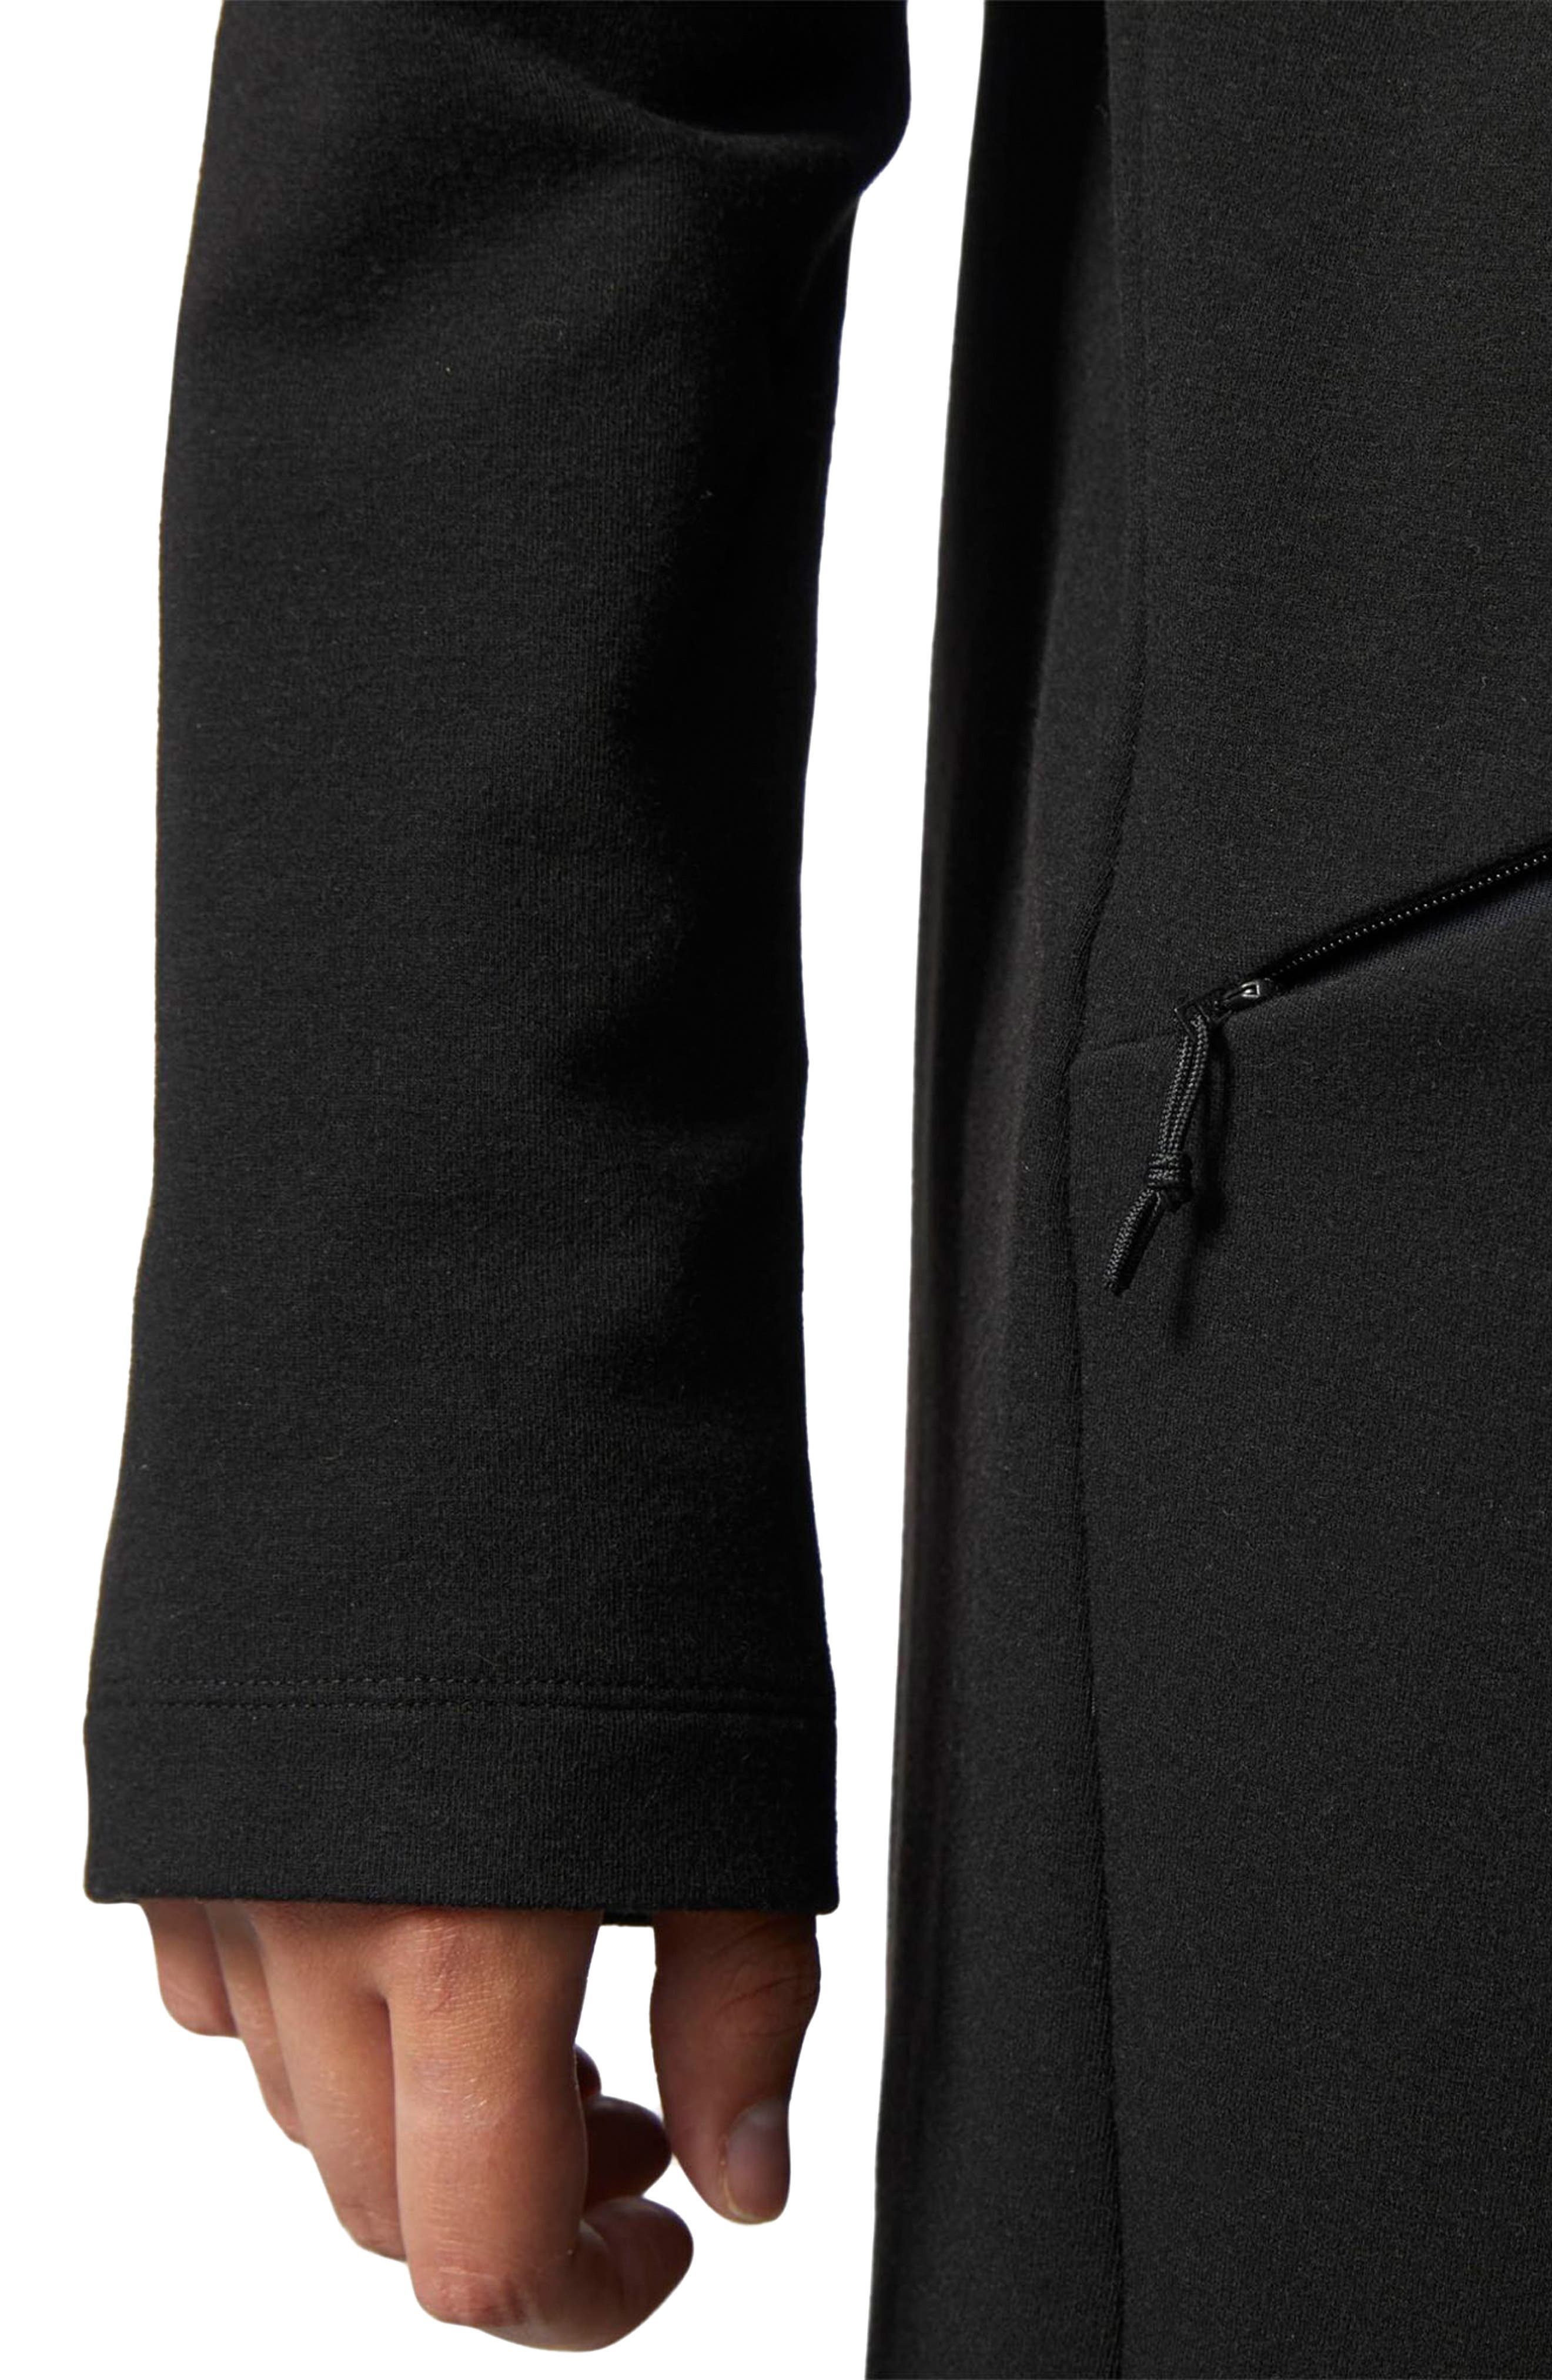 Performance Cover Up Jacket,                             Alternate thumbnail 4, color,                             001